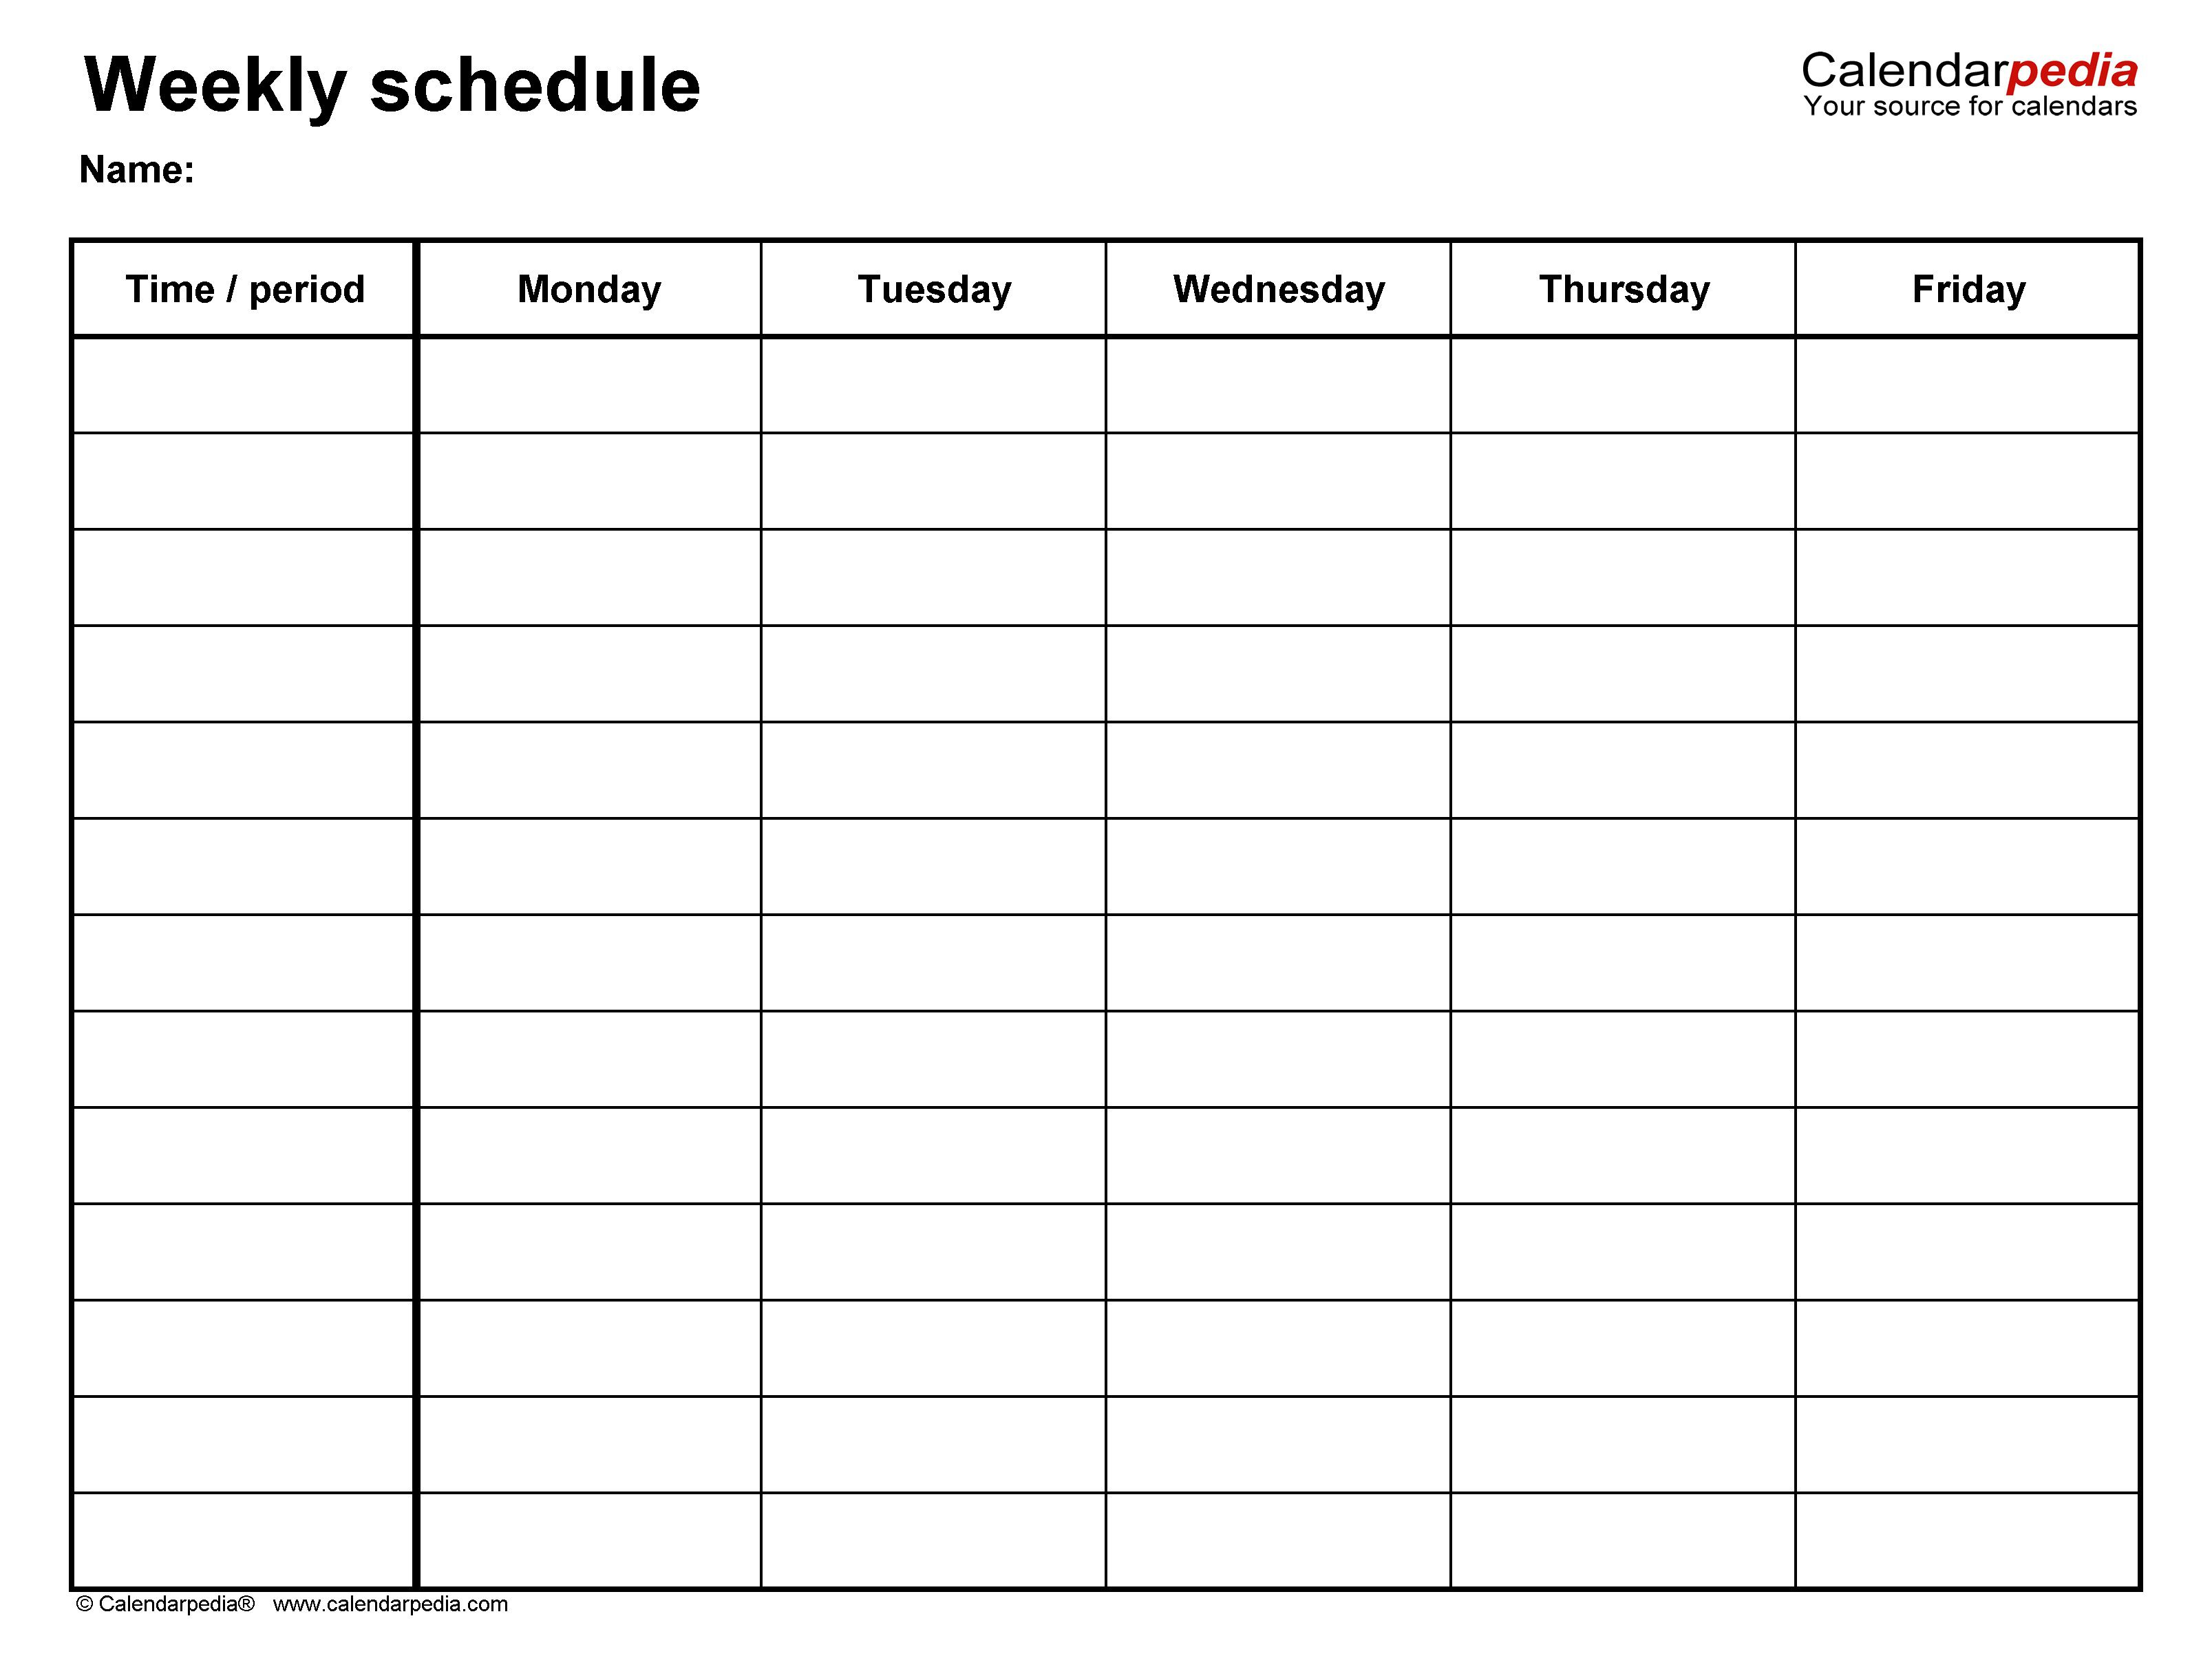 009 Fearsome Weekly Schedule Template Pdf Image  With Time Study WorkFull